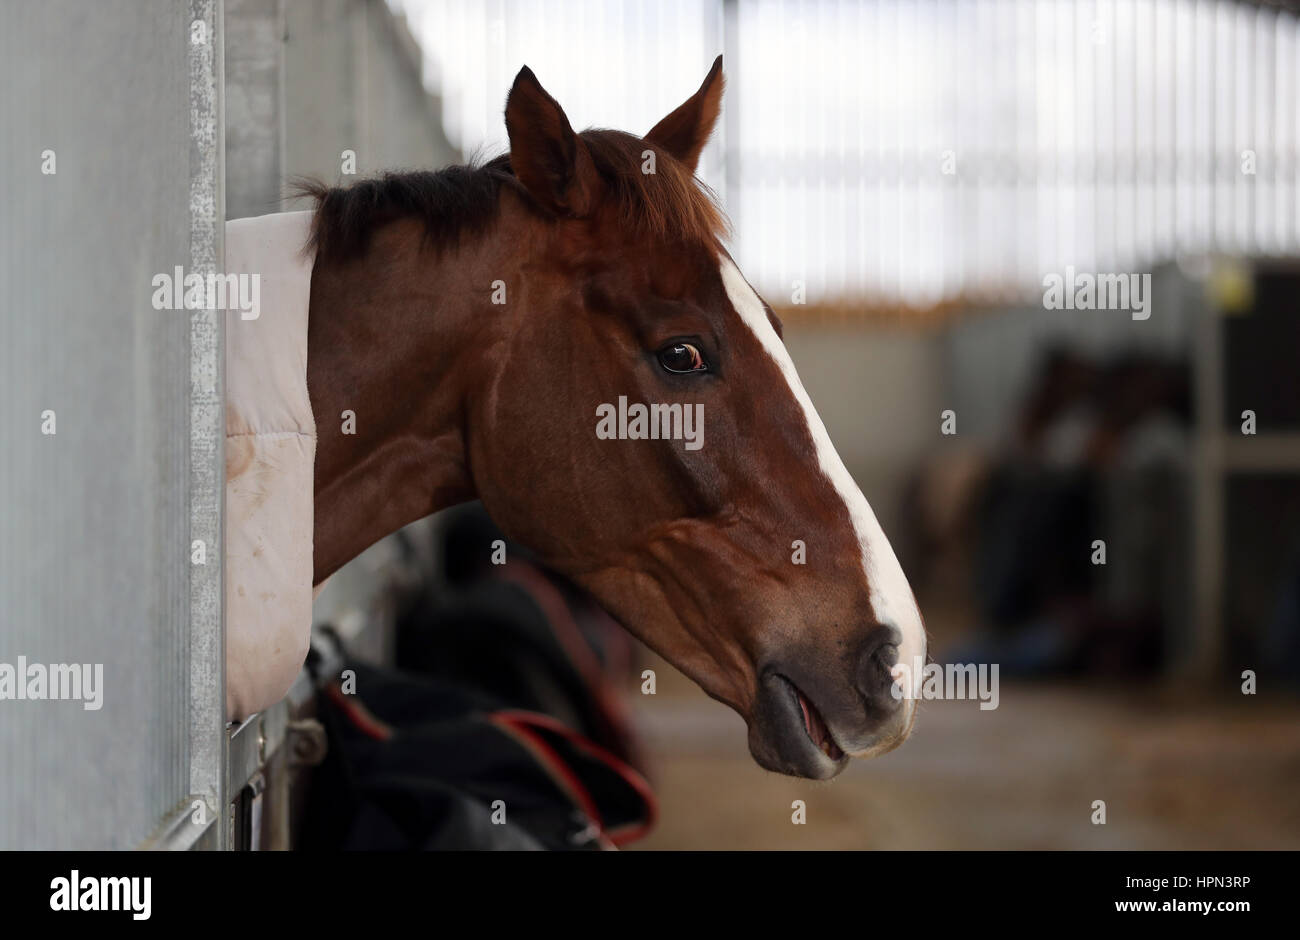 Native River during a stable visit to Colin Tizzard's stable at Milborne Port, Dorset. Stock Photo